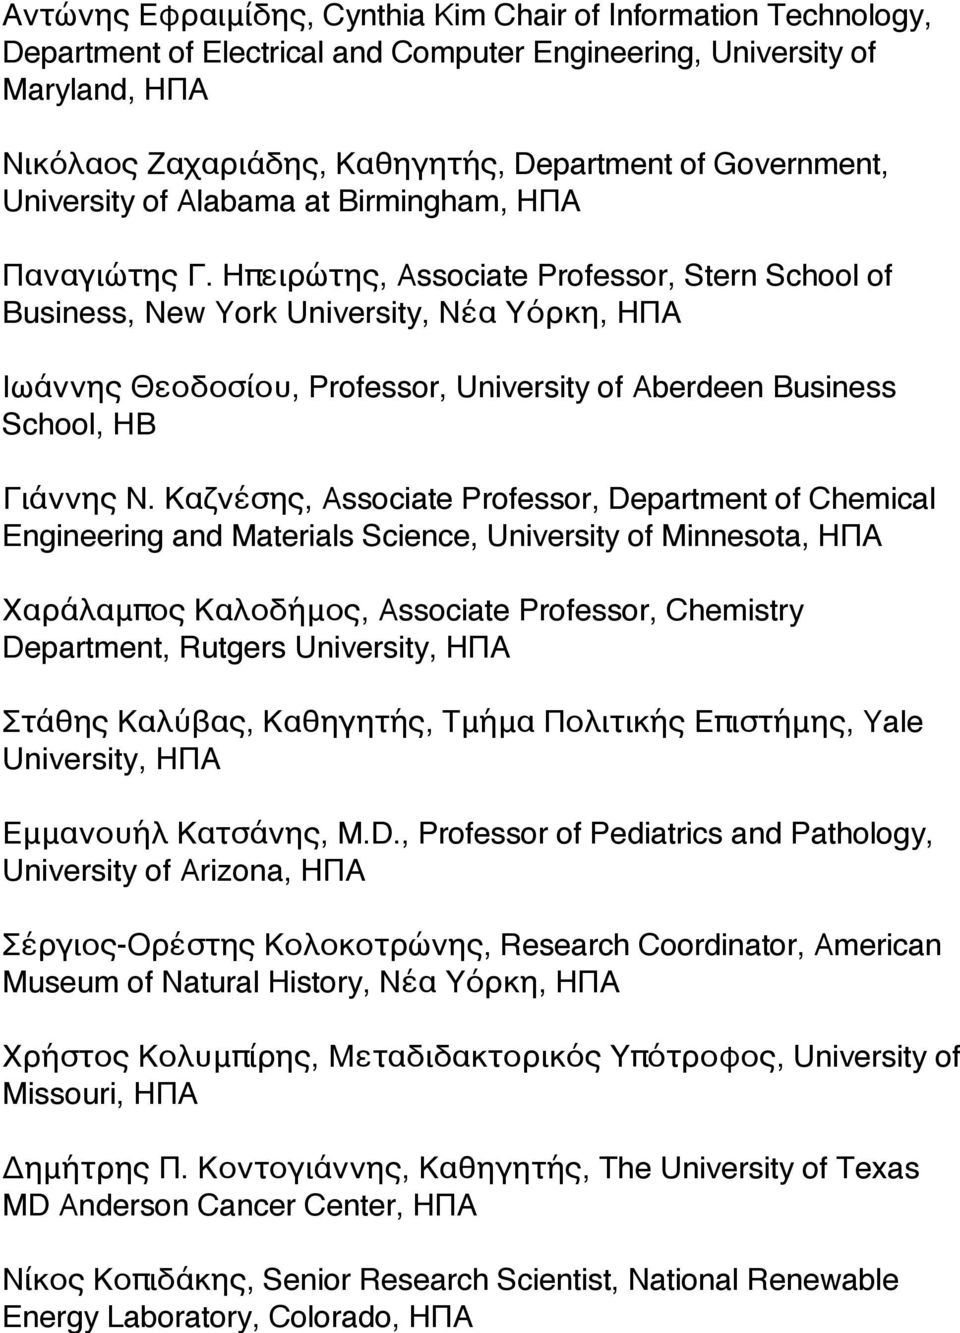 Ηπειρώτης, Associate Professor, Stern School of Business, New York University, Νέα Υόρκη, ΗΠΑ Ιωάννης Θεοδοσίου, Professor, University of Aberdeen Business School, ΗΒ Γιάννης Ν.